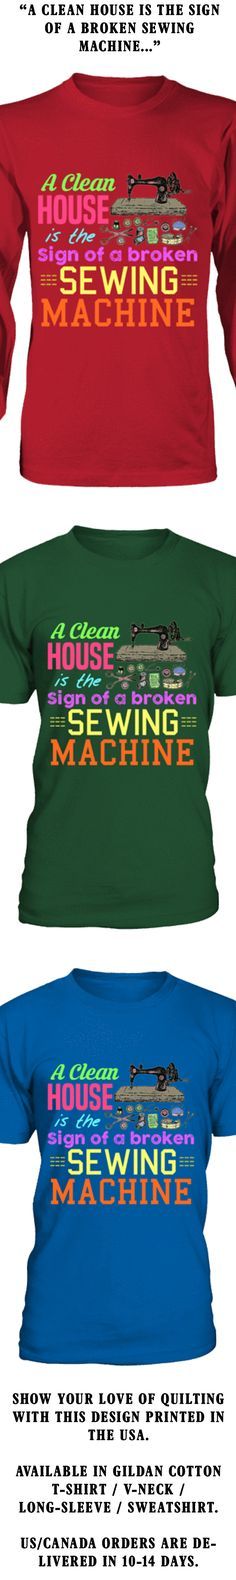 A Clean House Is The Sign Of A Broken Sewing Machine...  Show your love of Quilting with this design printed in the USA.  Available in Gildan Cotton T-Shirt / V-Neck / Long-Sleeve / Sweatshirt.   US/Canada orders are delivered in 10-14 days.